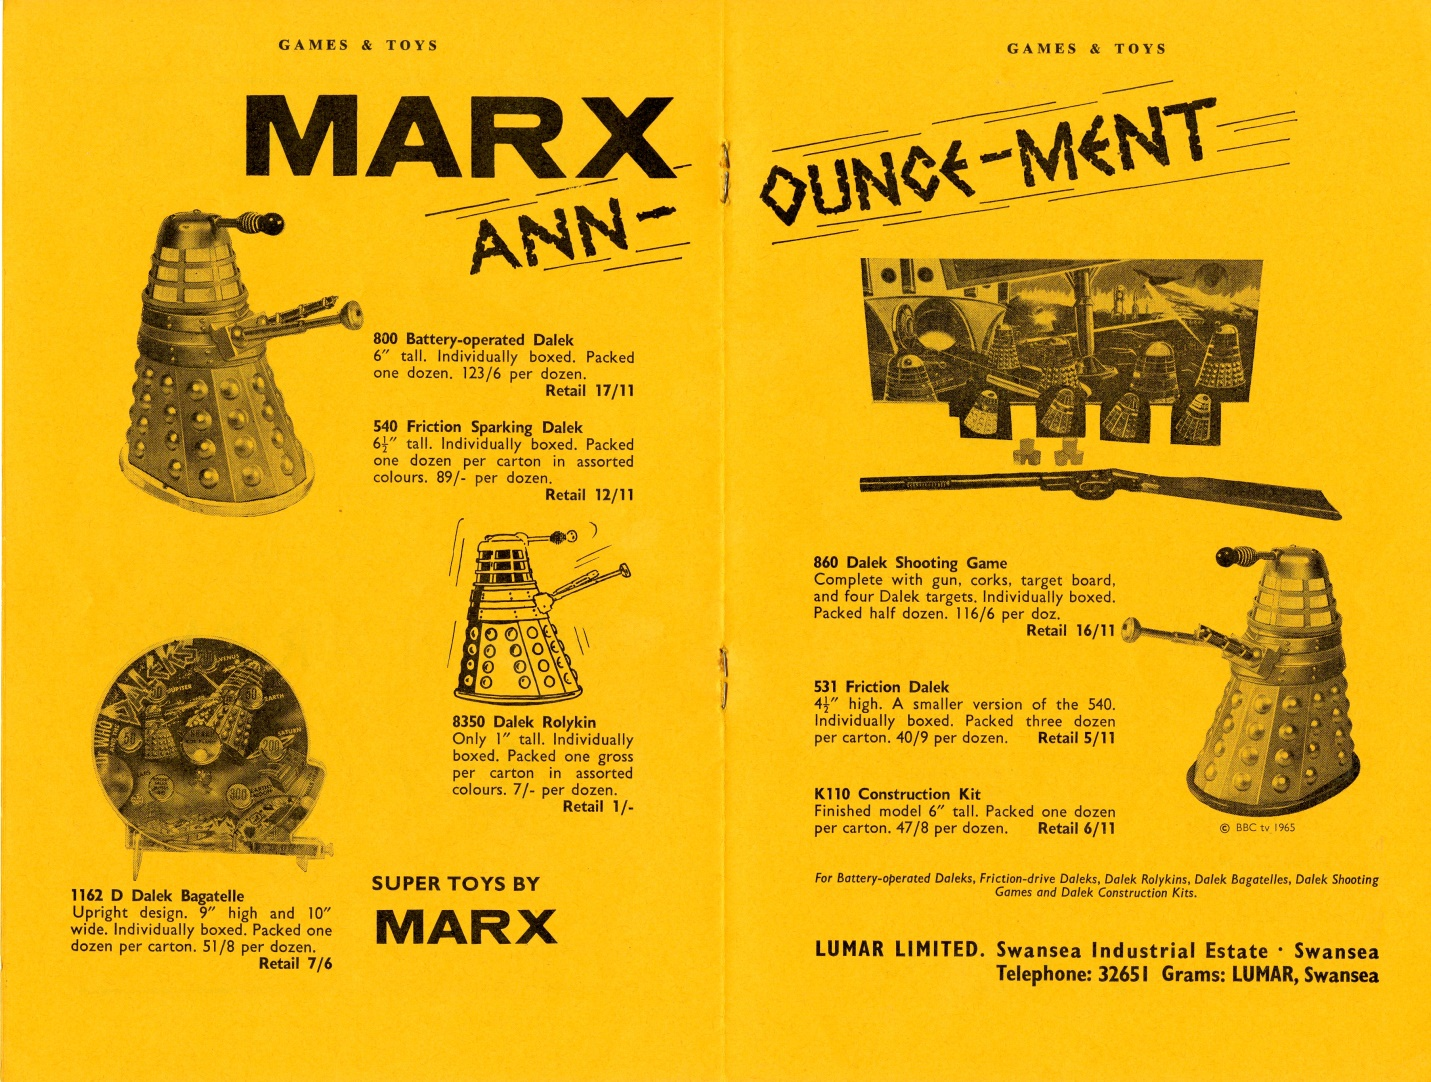 Ad. for Louis Marx and Company Ltd. Dalek toys from the Supplement to Games and Toys, September 1965